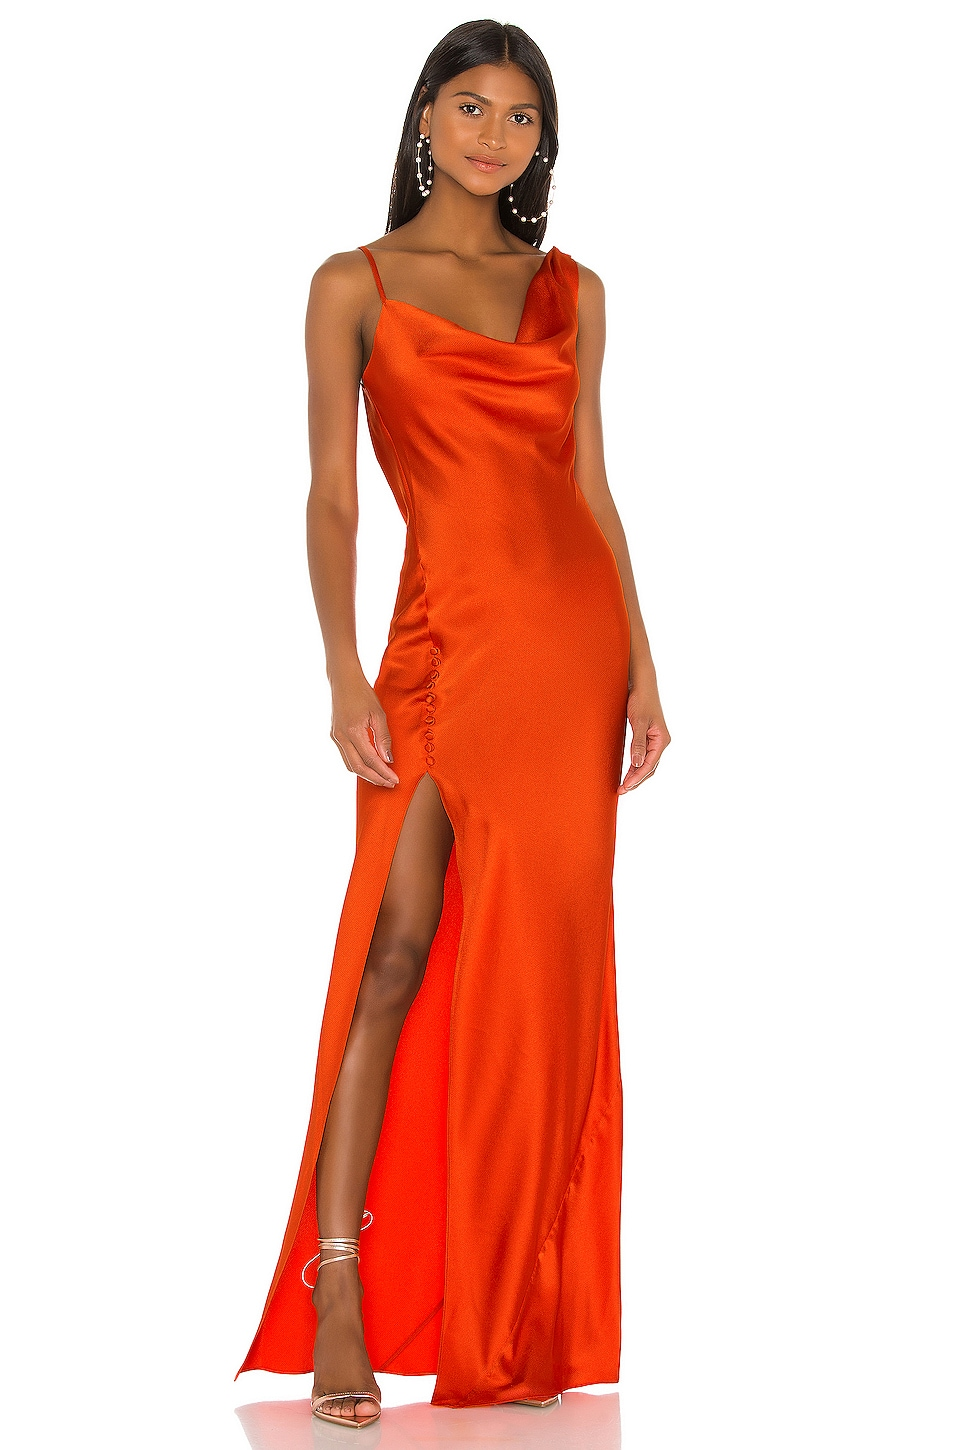 Jay Godfrey Justine Dress in Sunkist